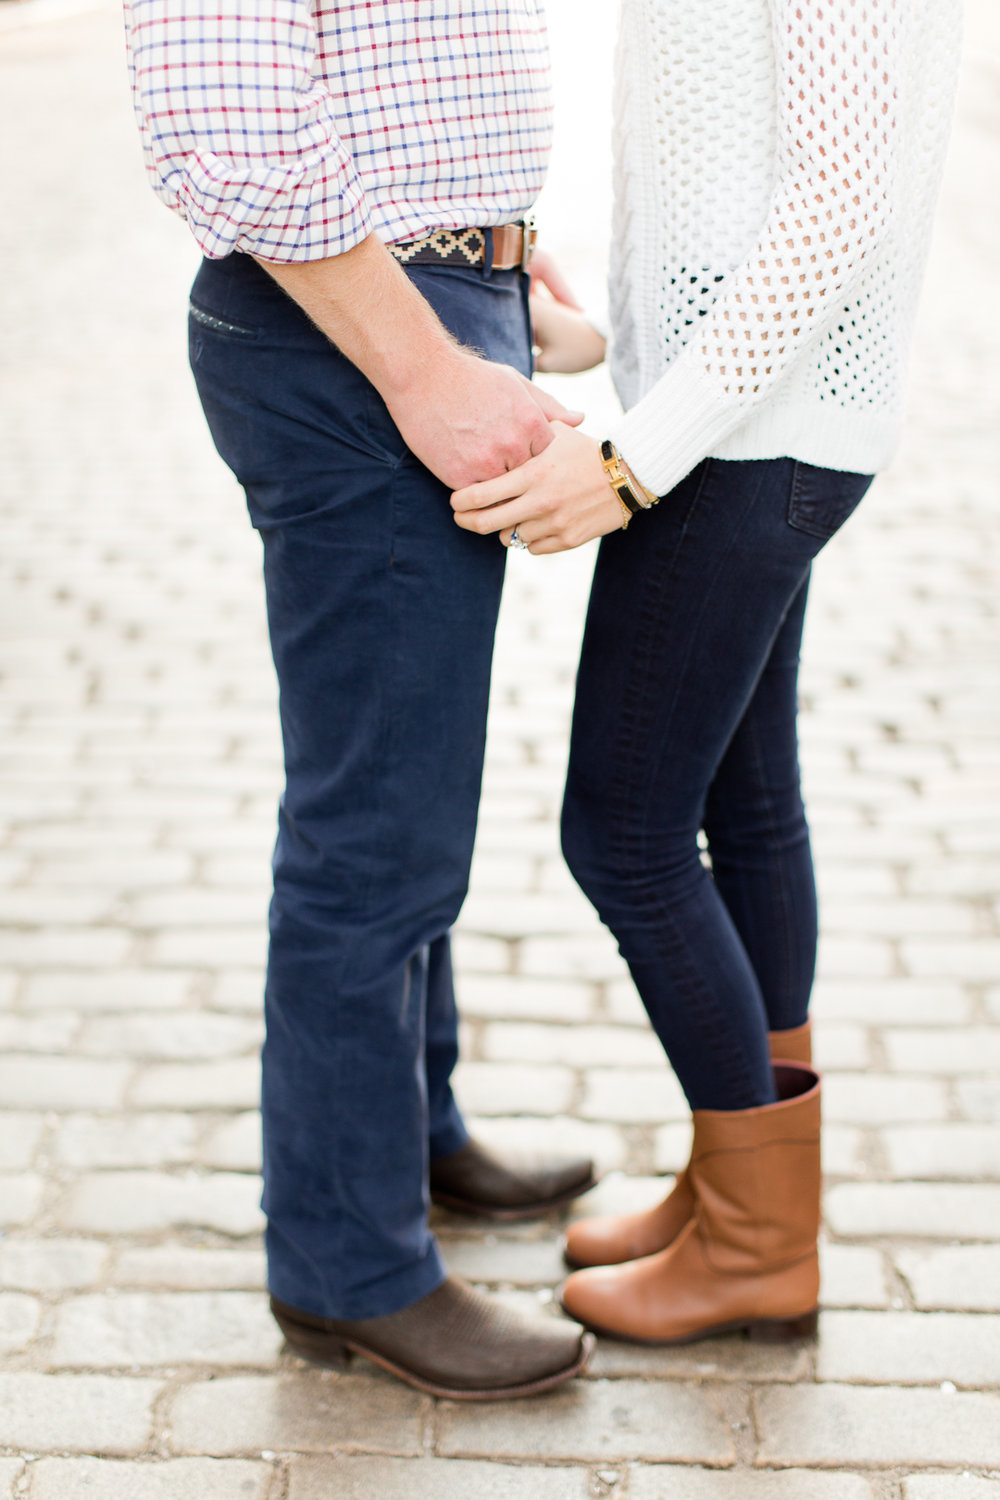 Melissa Kruse Photography - Megan & Tyler West Village Engagement Photos-88.jpg